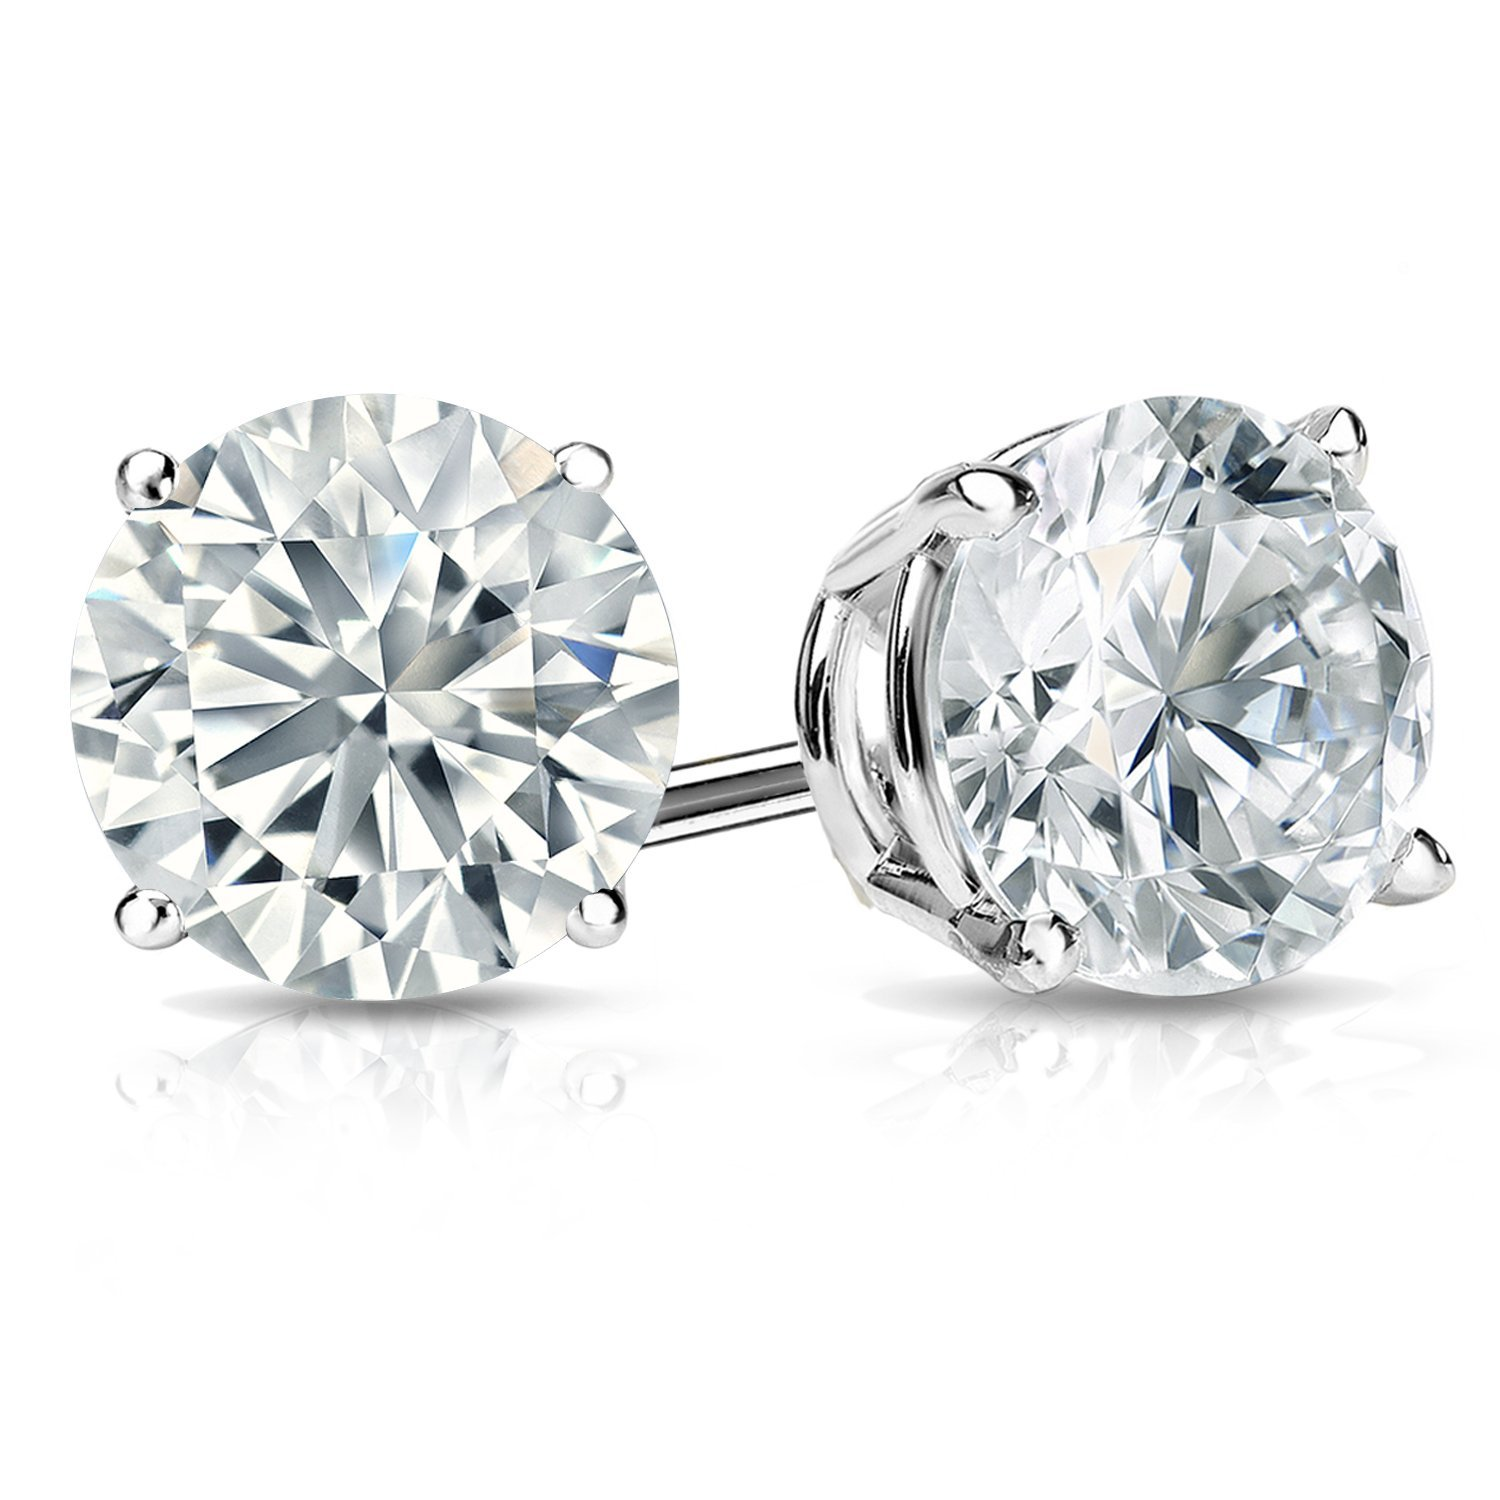 white gold platinum diamond stud earrings 0 20 4 00 ctw